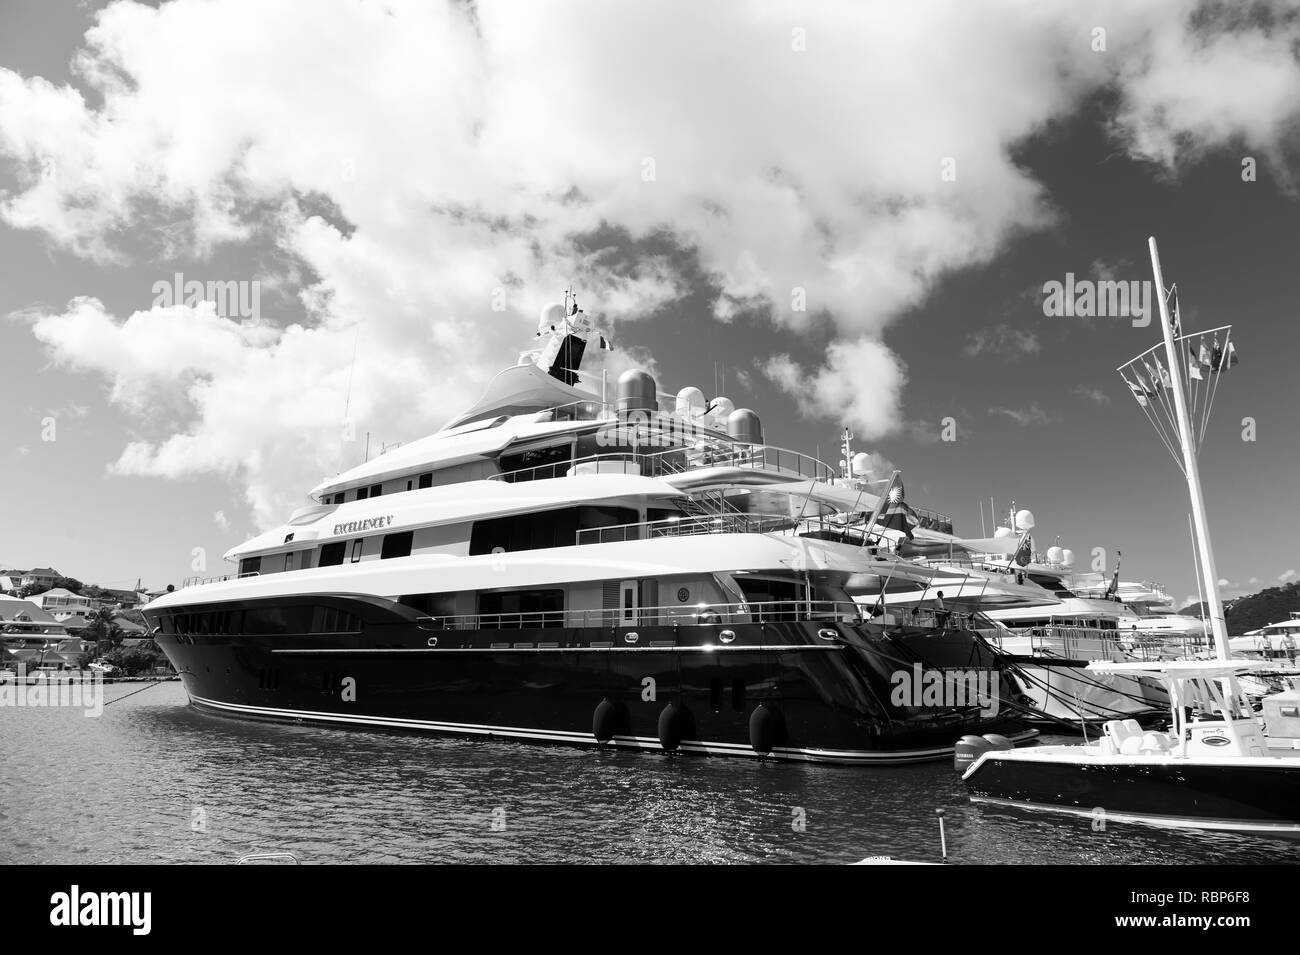 Gustavia, st.barts - January 25, 2016: water transport and vessel. Yachts anchored at sea pier on tropical beach. Yachting, luxury travel on yacht. Summer vacation on island wanderlust. - Stock Image